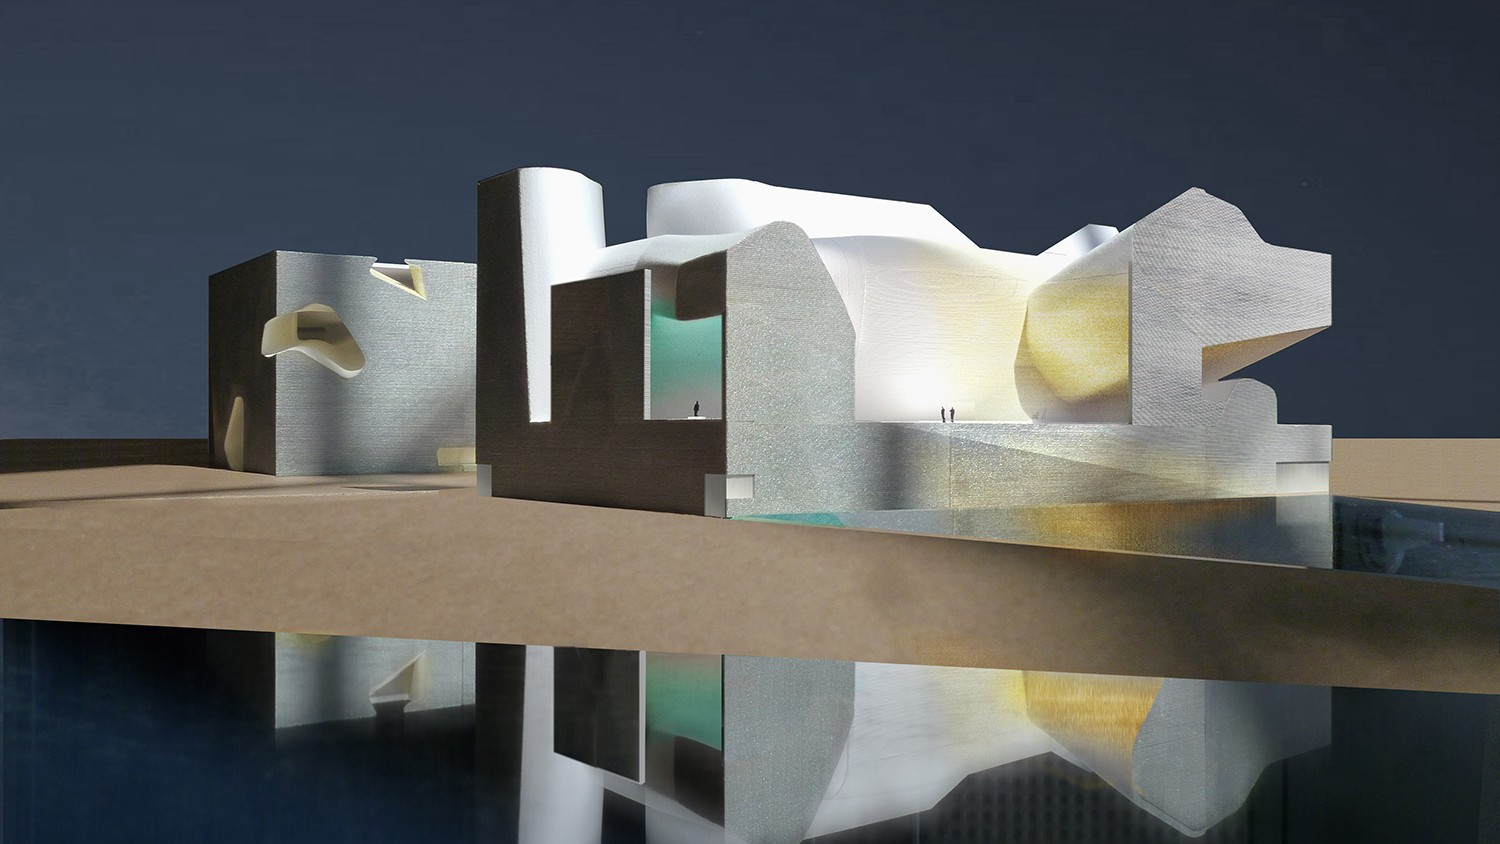 https://s3.us-east-2.amazonaws.com/steven-holl/uploads/projects/project-images/StevenHollArchitects_Tianjin_NWCornerview_2withentry2_west_WH.jpg